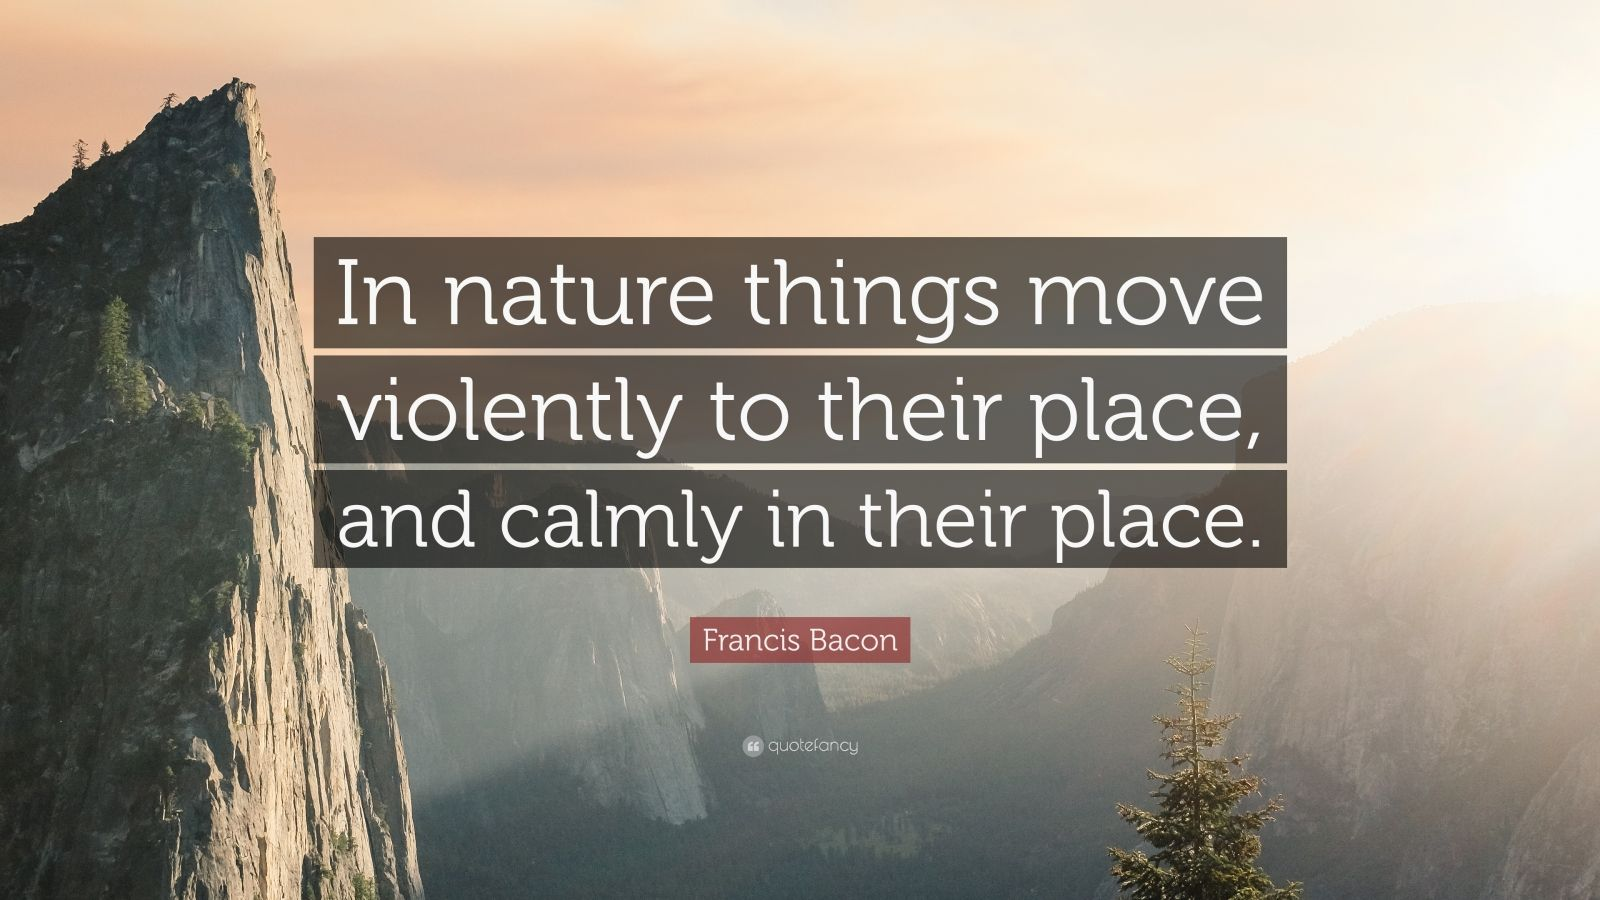 """Francis Bacon Quote: """"In nature things move violently to their place, and calmly in their place."""""""